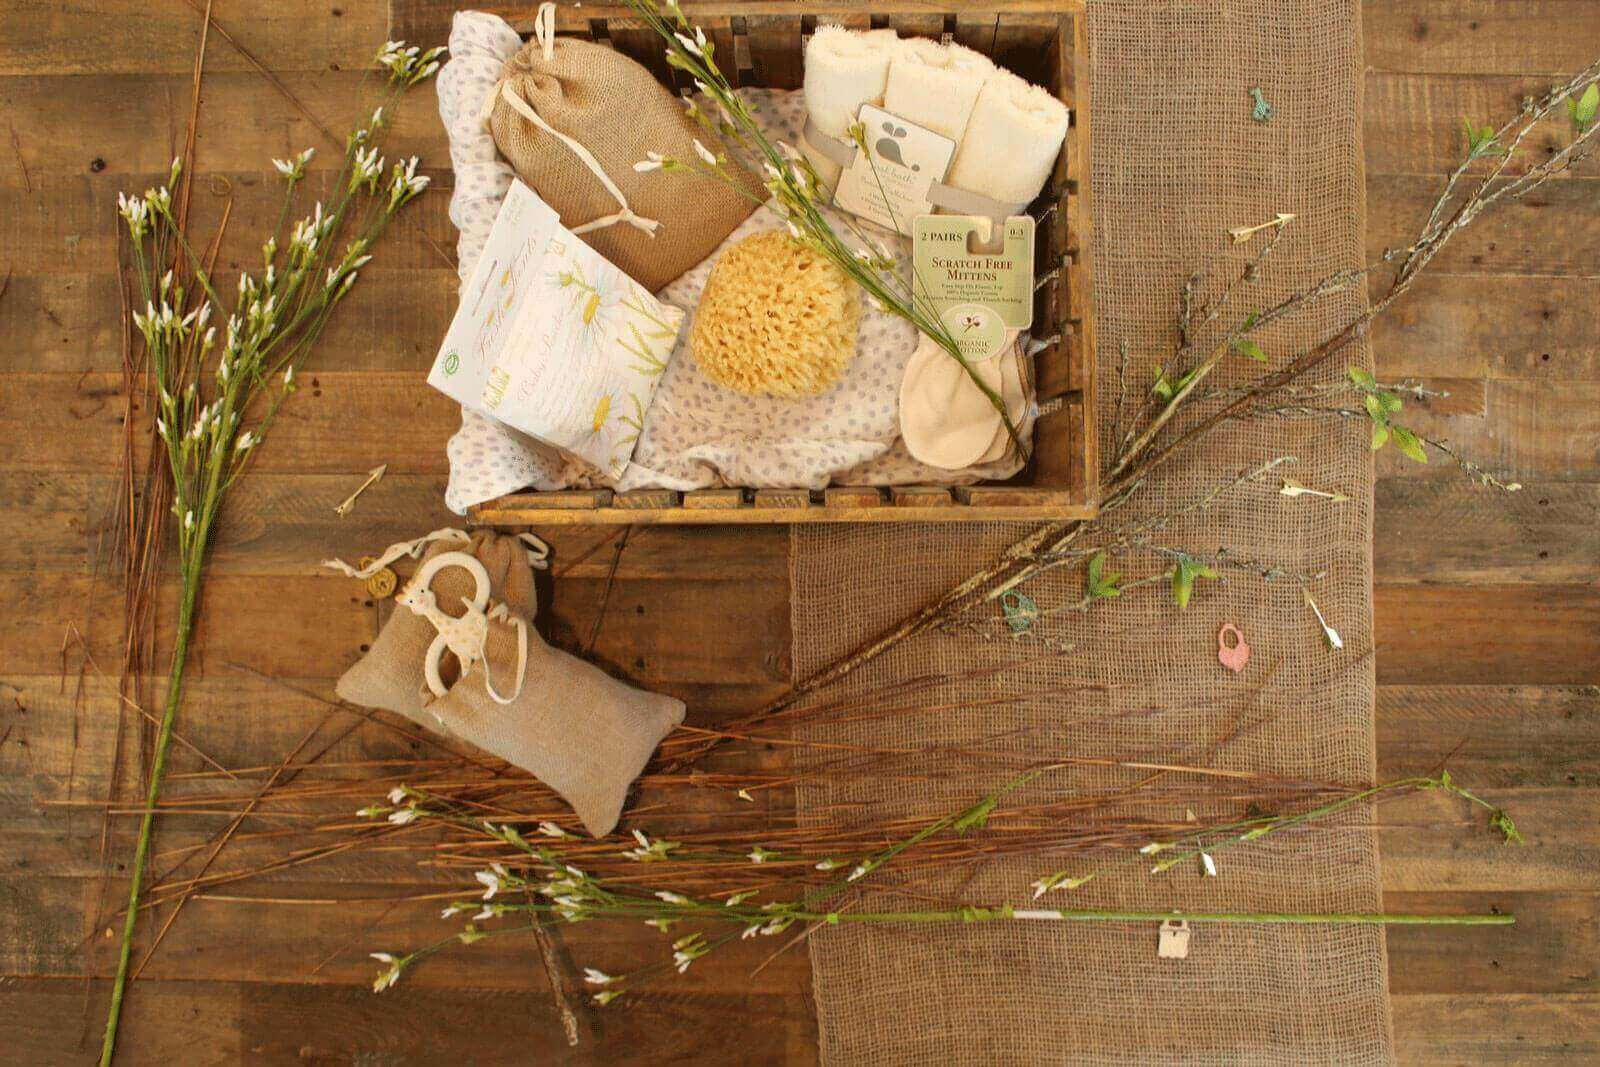 rustic wooden table with plants and a gift box of natural bath presents